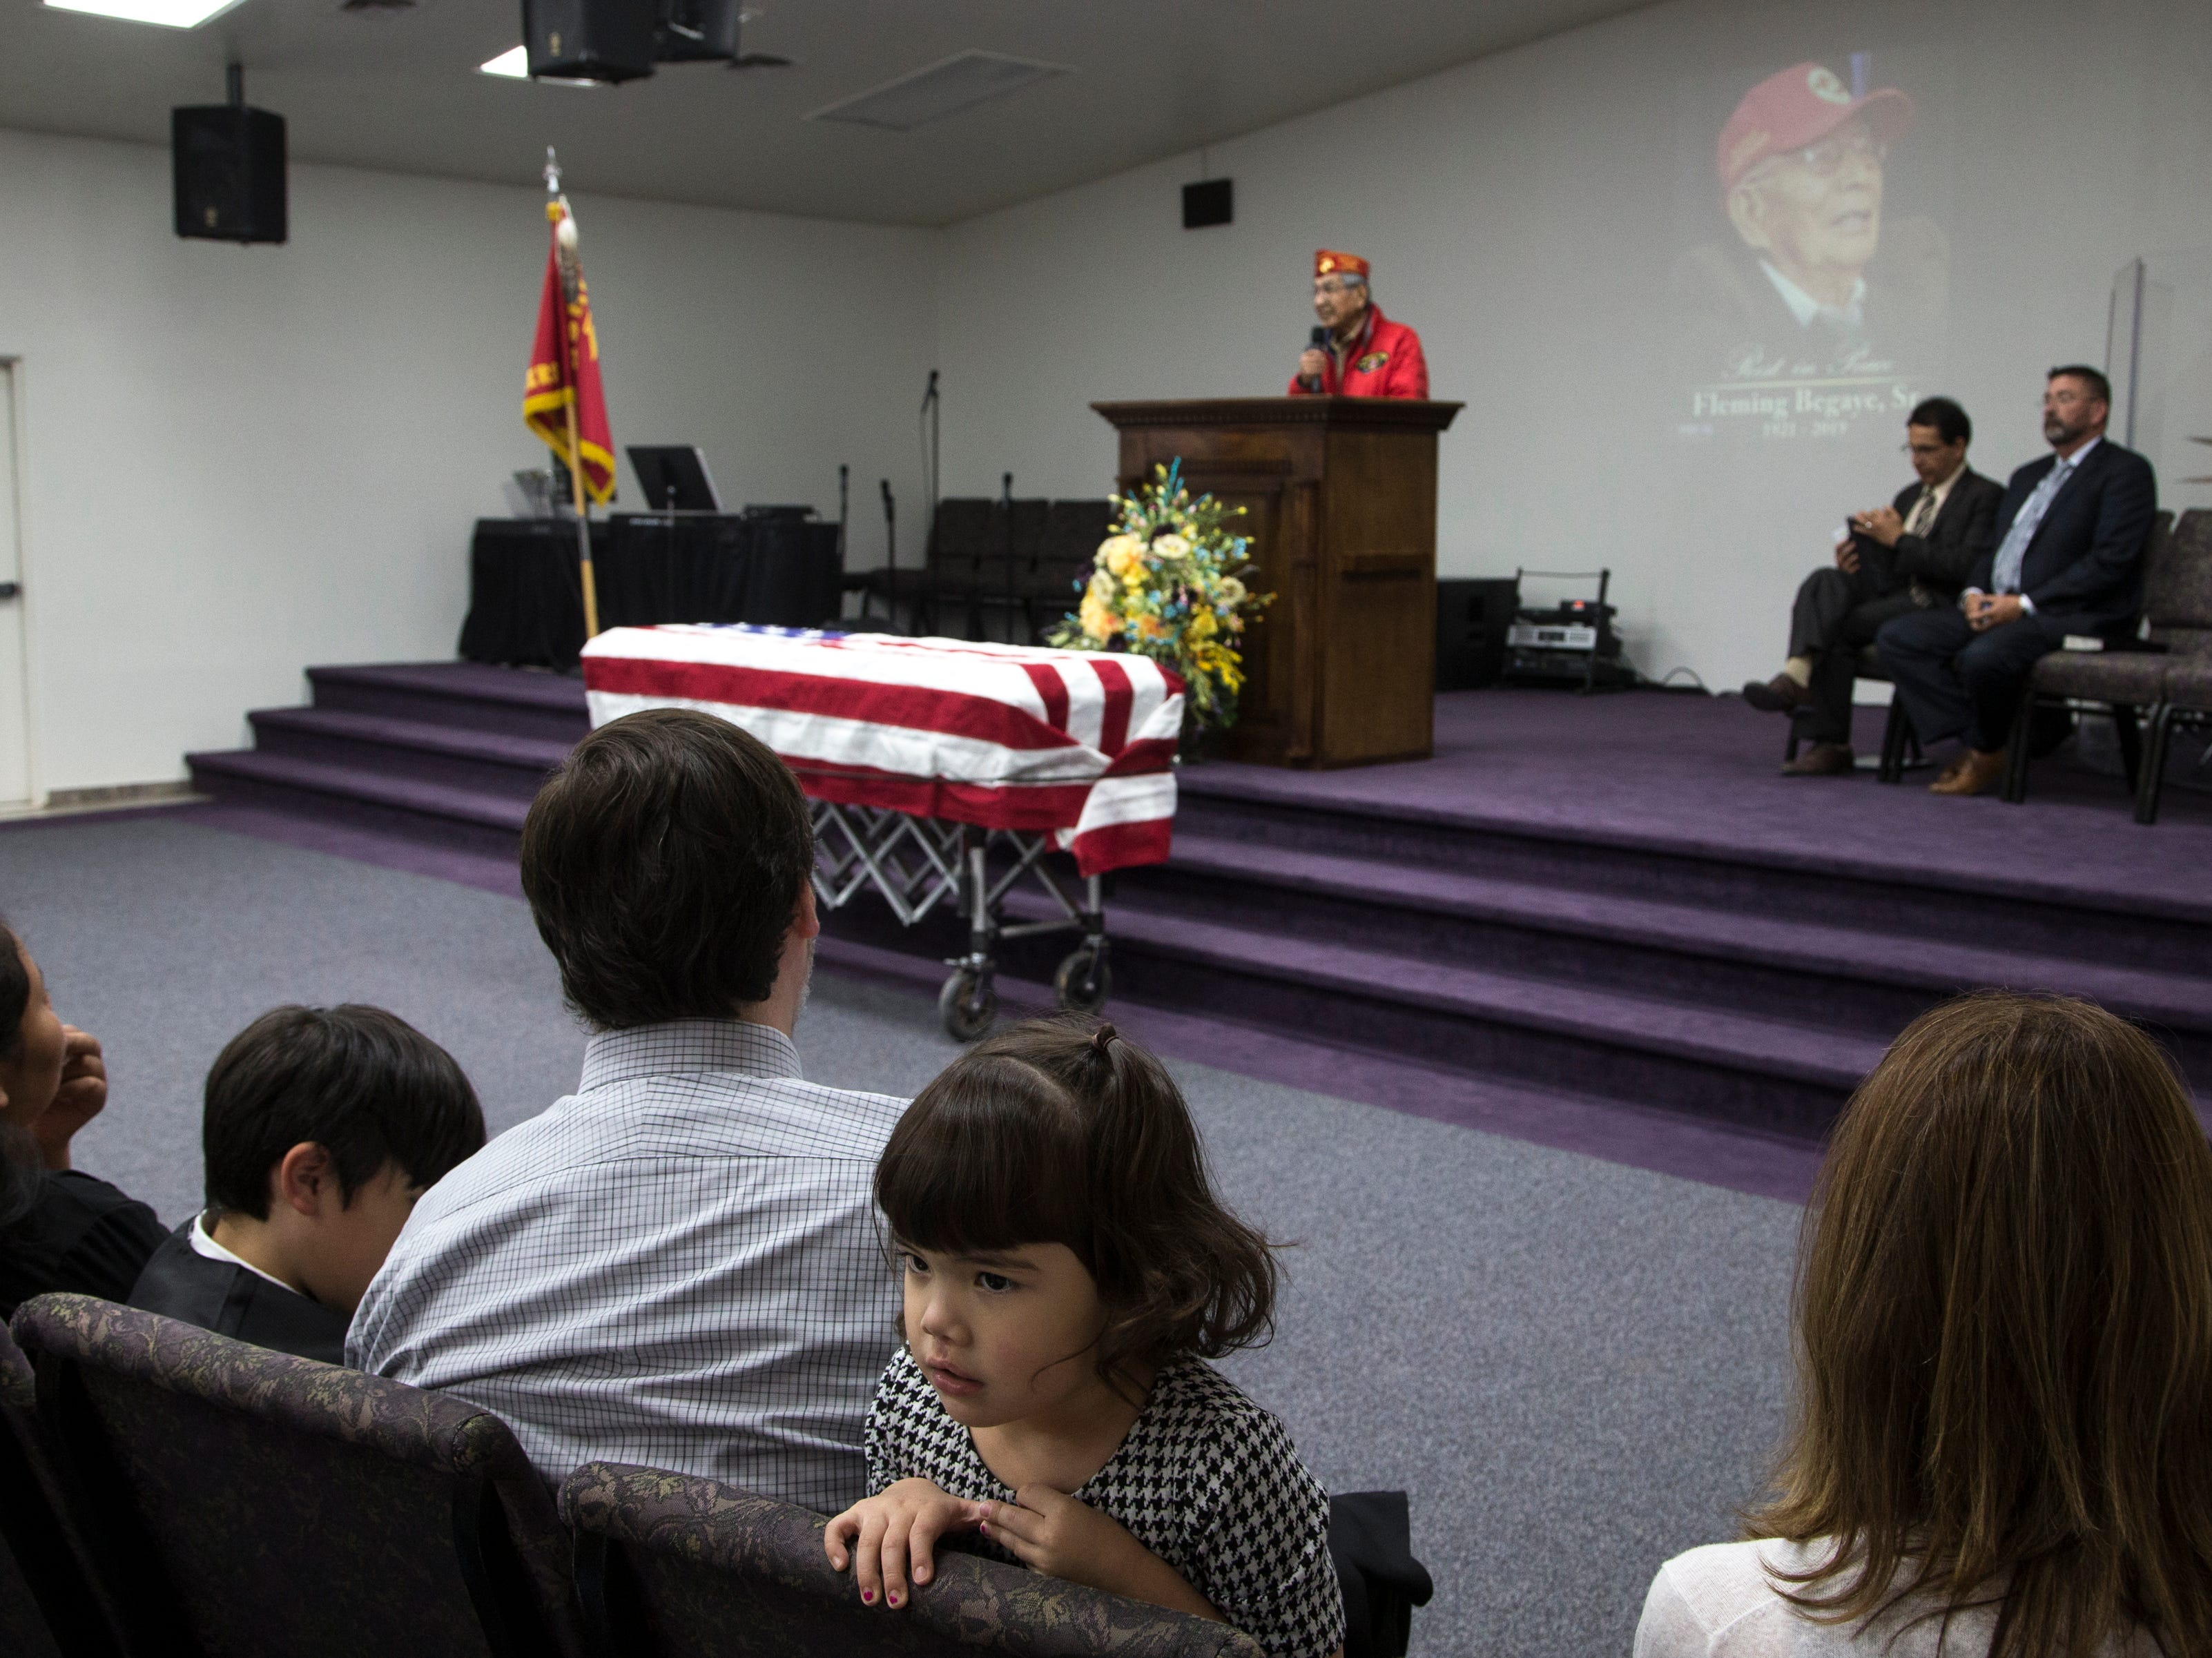 Navajo Code Talker Peter MacDonald Sr. speaks during the funeral service for Navajo Code Talker Fleming Begaye Sr. on May 17, 2019, at the Potter's House Christian Center in Chinle, Ariz.